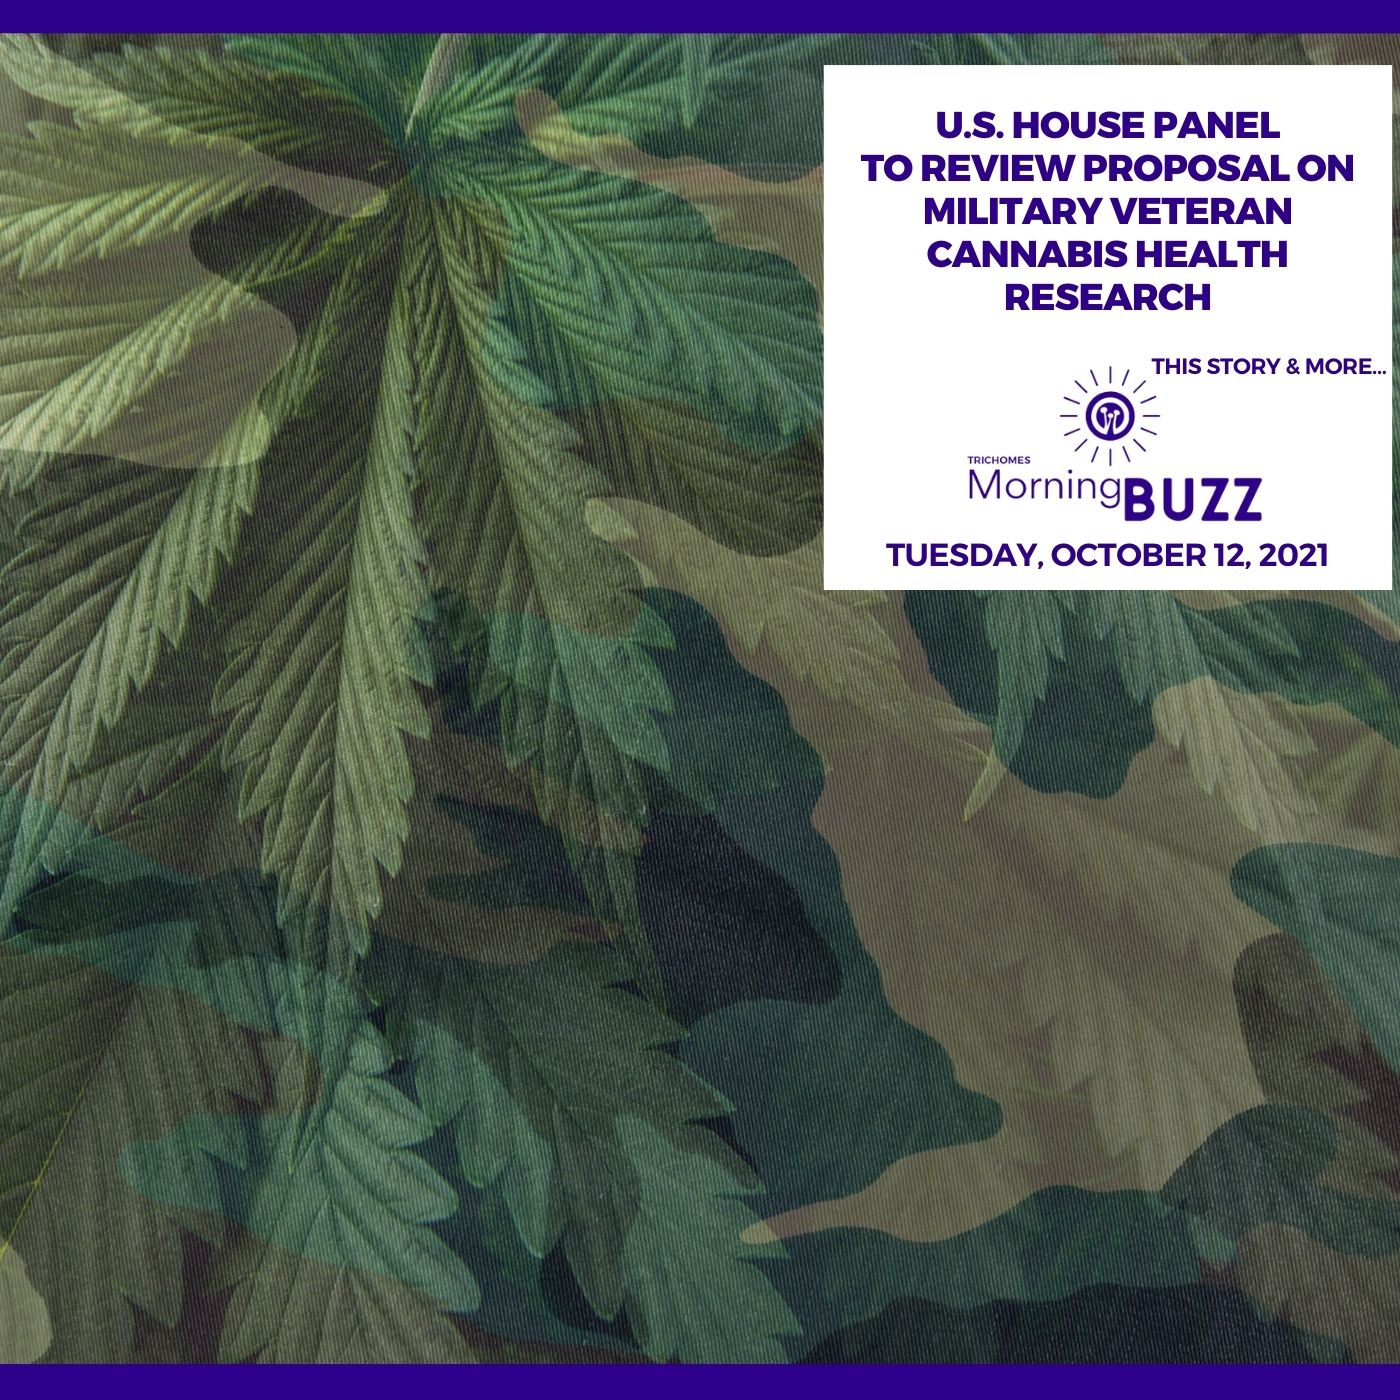 U.S. House Panel To Review Proposal On Military Veteran Cannabis Health Research show art